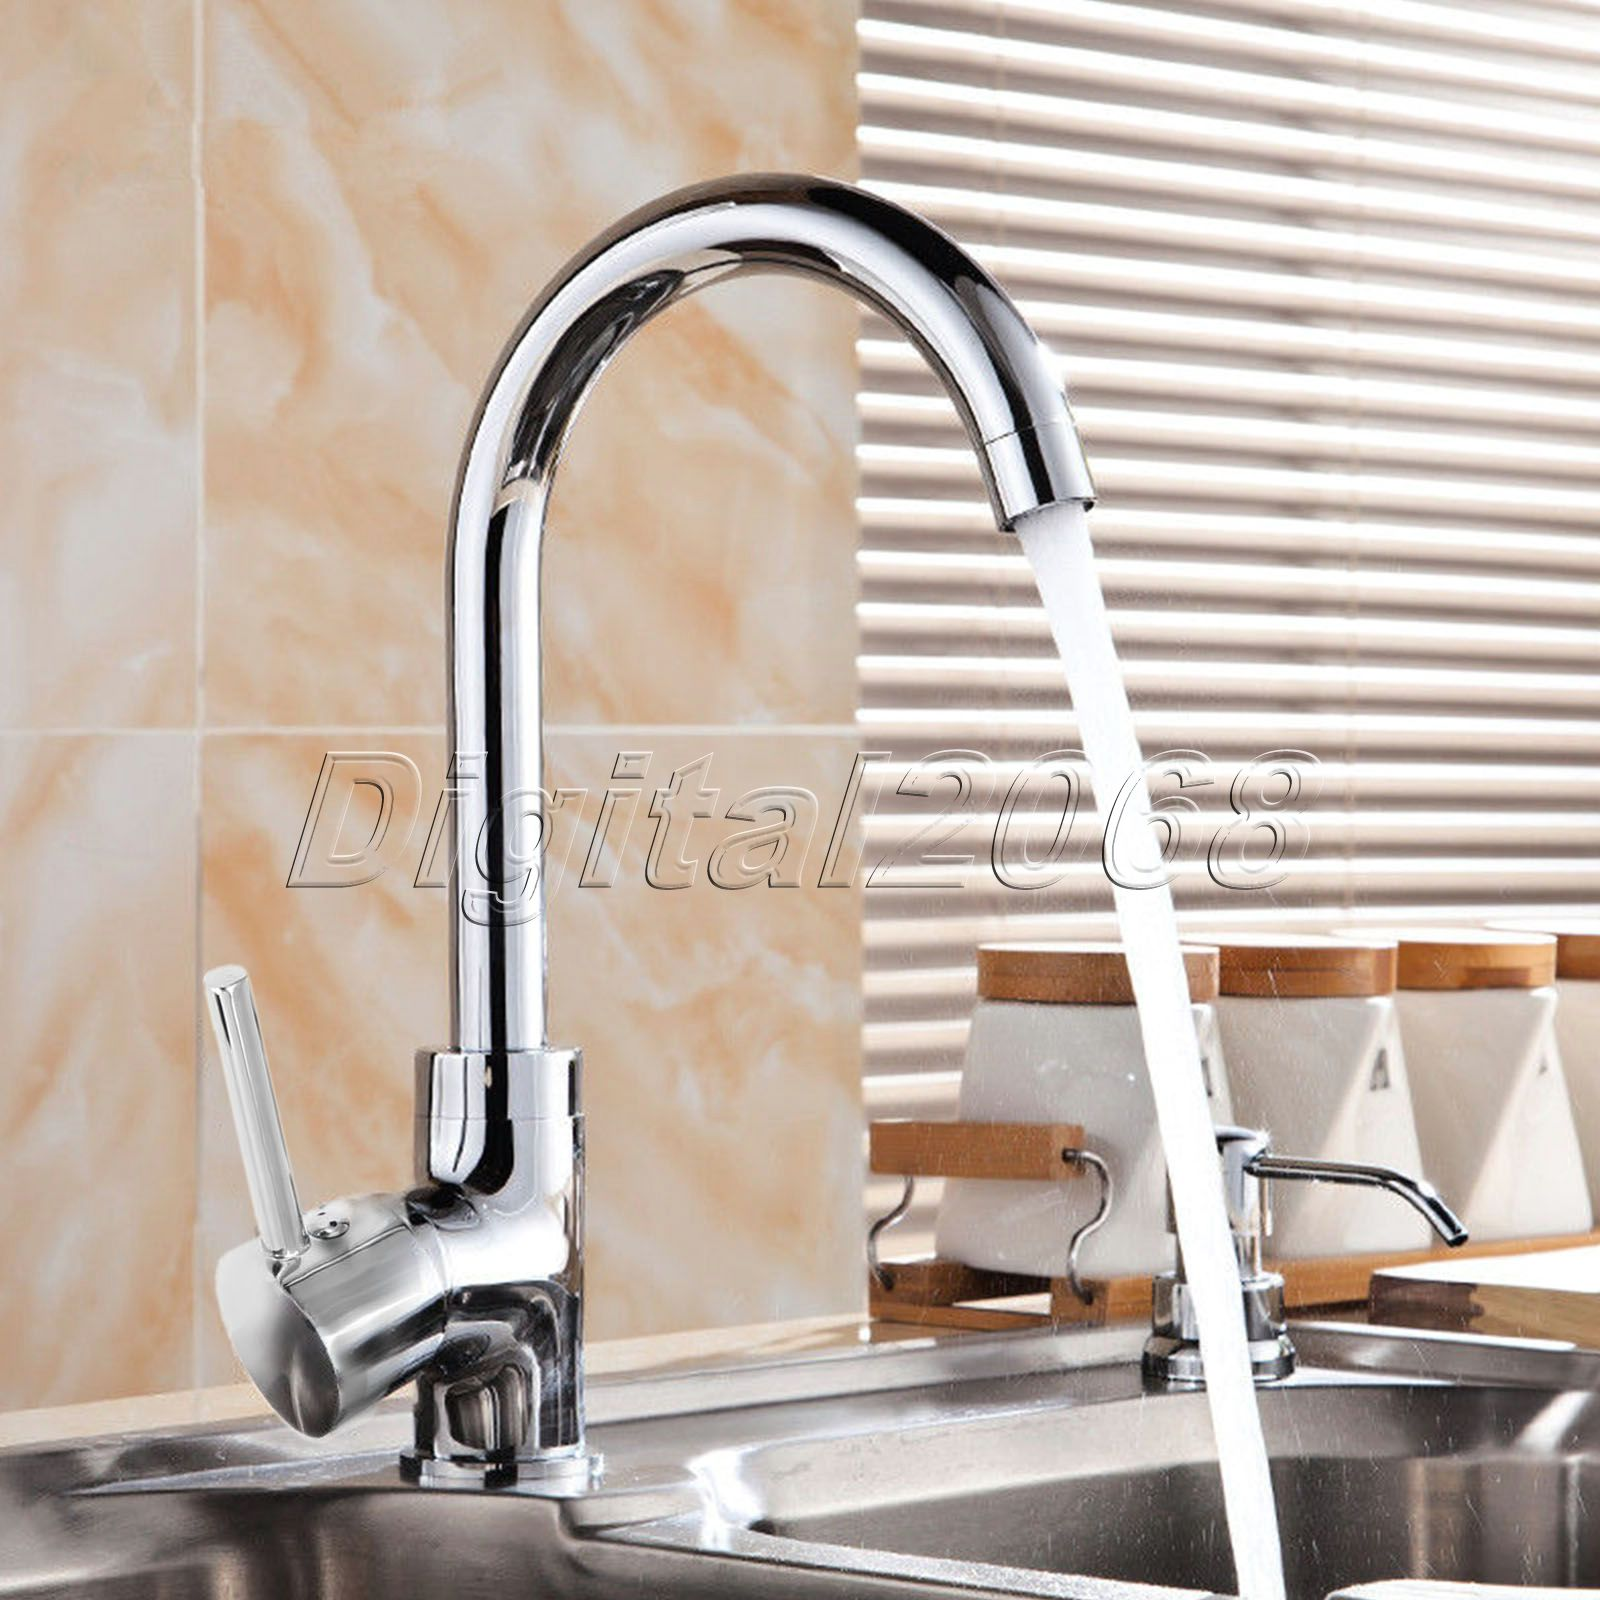 Brass Rotatable Sink Torneira Chrome Finish Kitchen Bathroom Faucet Single Handle Swivel Spout Cold and Hot Water Mixer Taps led spout swivel spout kitchen faucet vessel sink mixer tap chrome finish solid brass free shipping hot sale